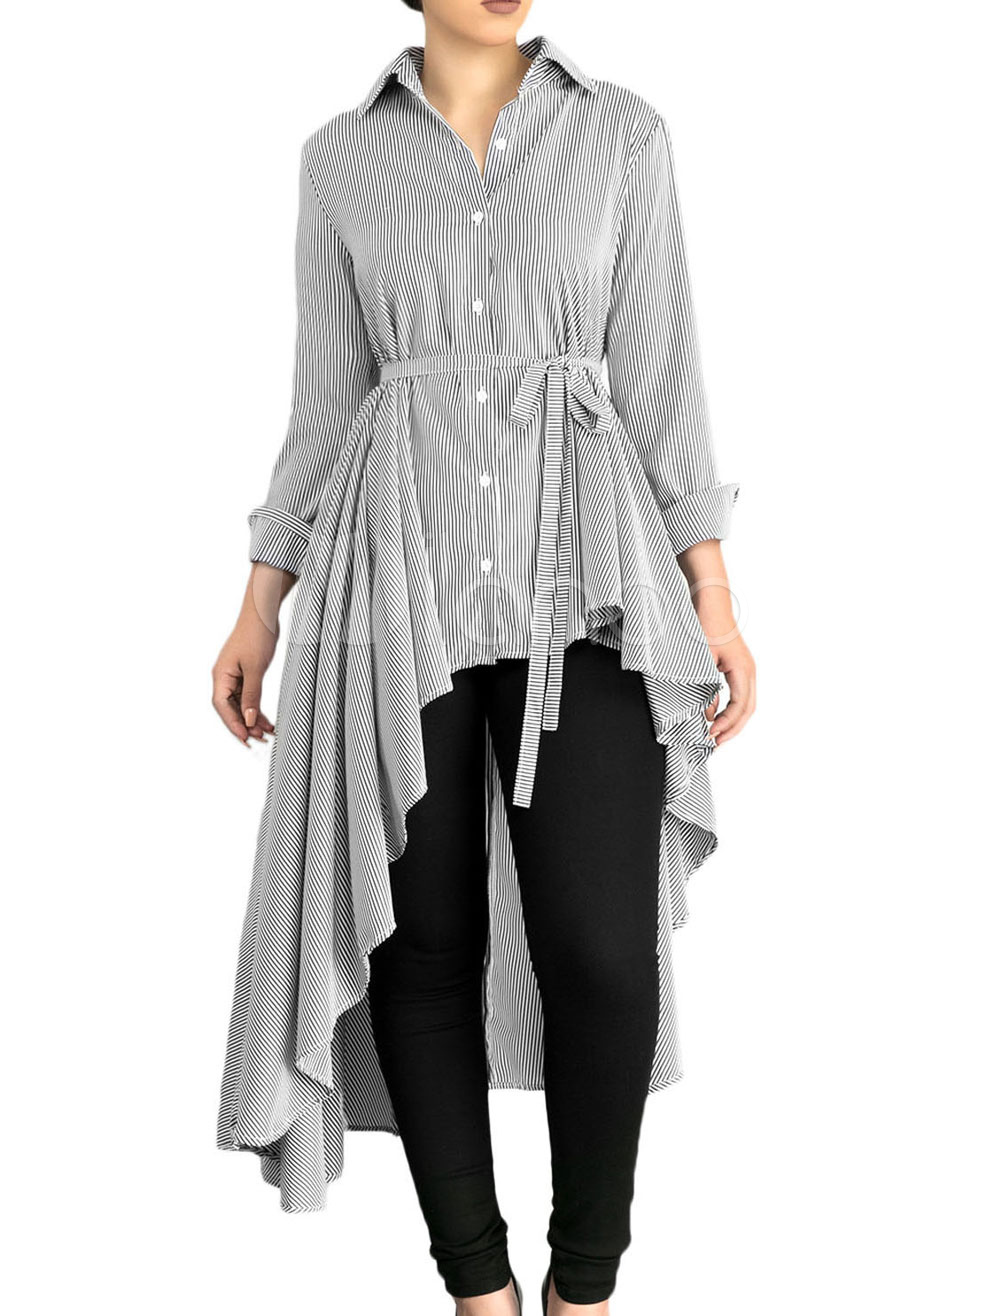 Buy Grey Women's Blouses Long Sleeve Turndown Collar Striped High Low Shirt for $23.74 in Milanoo store